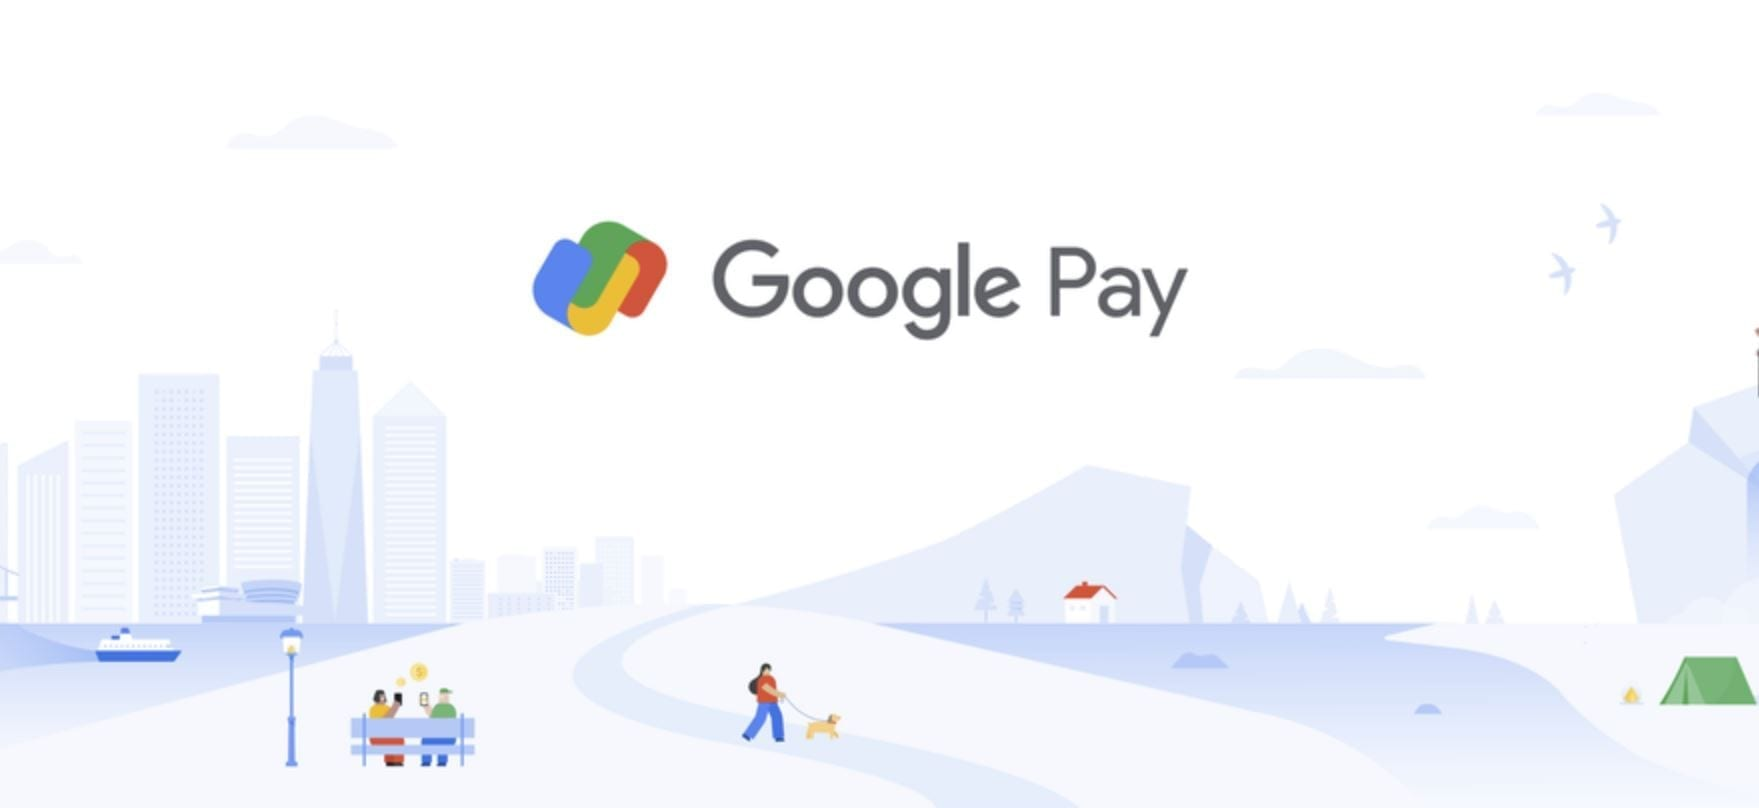 Google Pay è morto, lunga vita al nuovo Google Pay